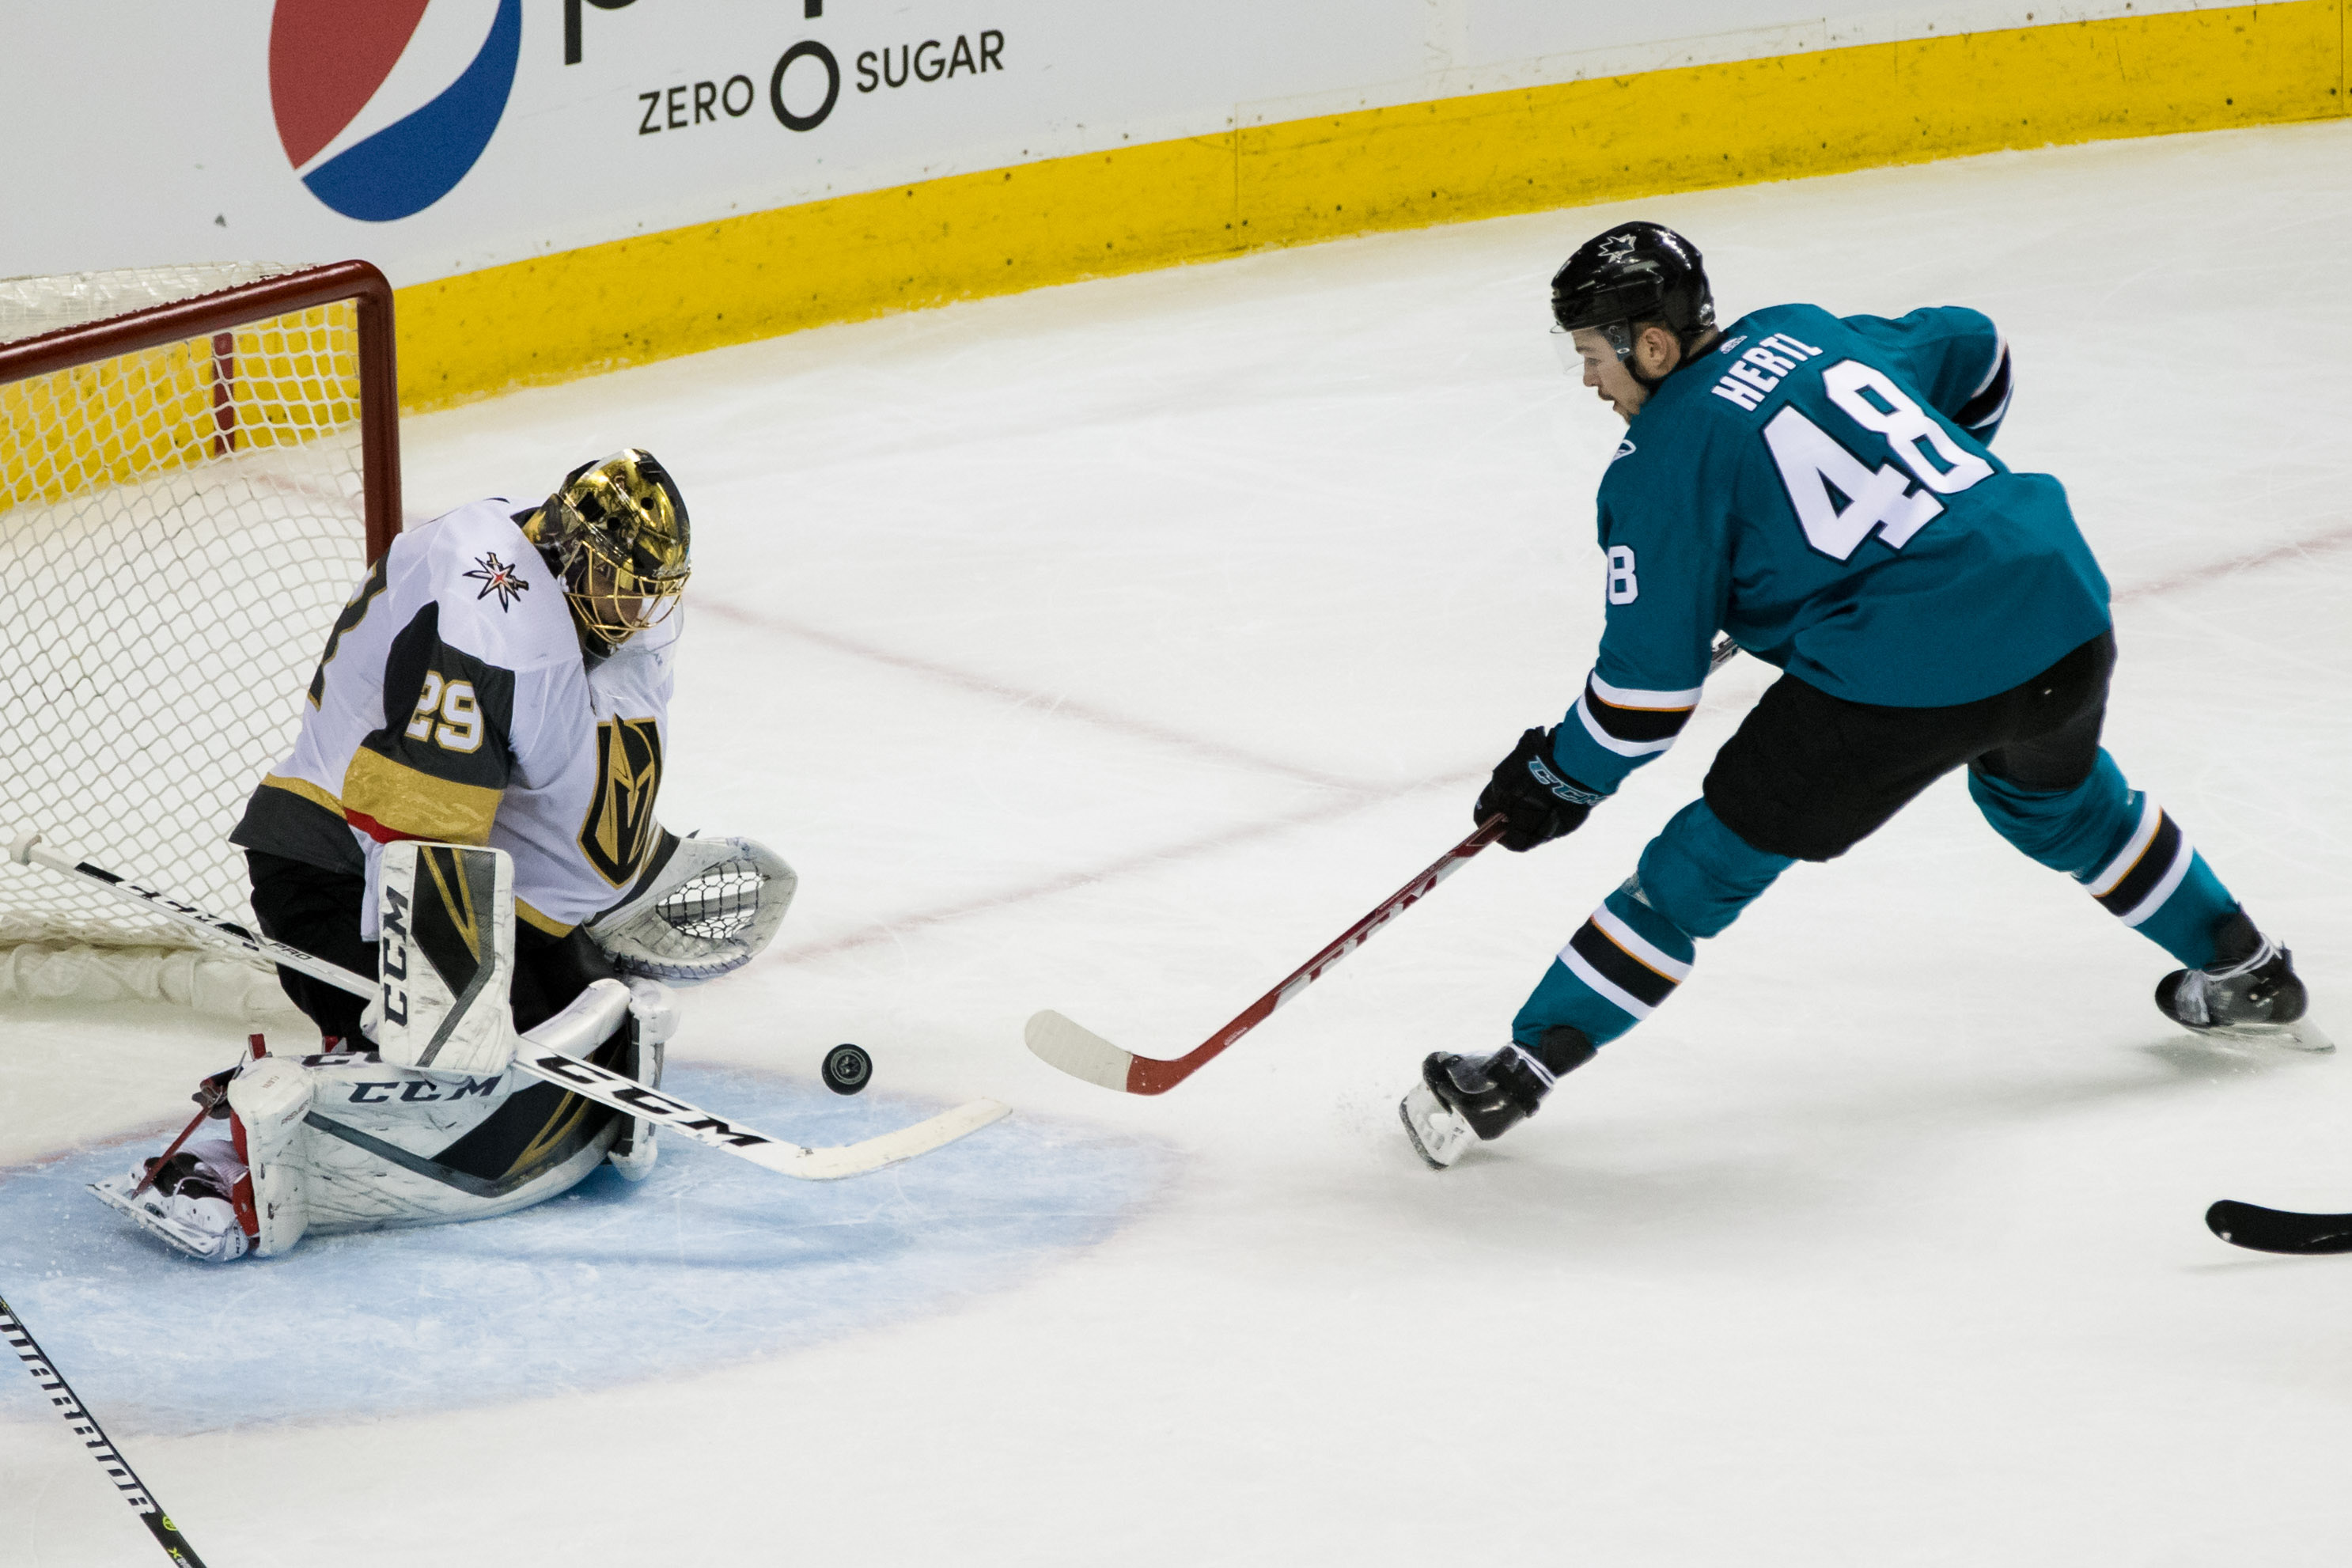 Apr 30, 2018; San Jose, CA, USA; San Jose Sharks center Tomas Hertl (48) shoots as Vegas Golden Knights goaltender Marc-Andre Fleury (29) defends in the second period of game three of the second round of the 2018 Stanley Cup Playoffs at SAP Center at San